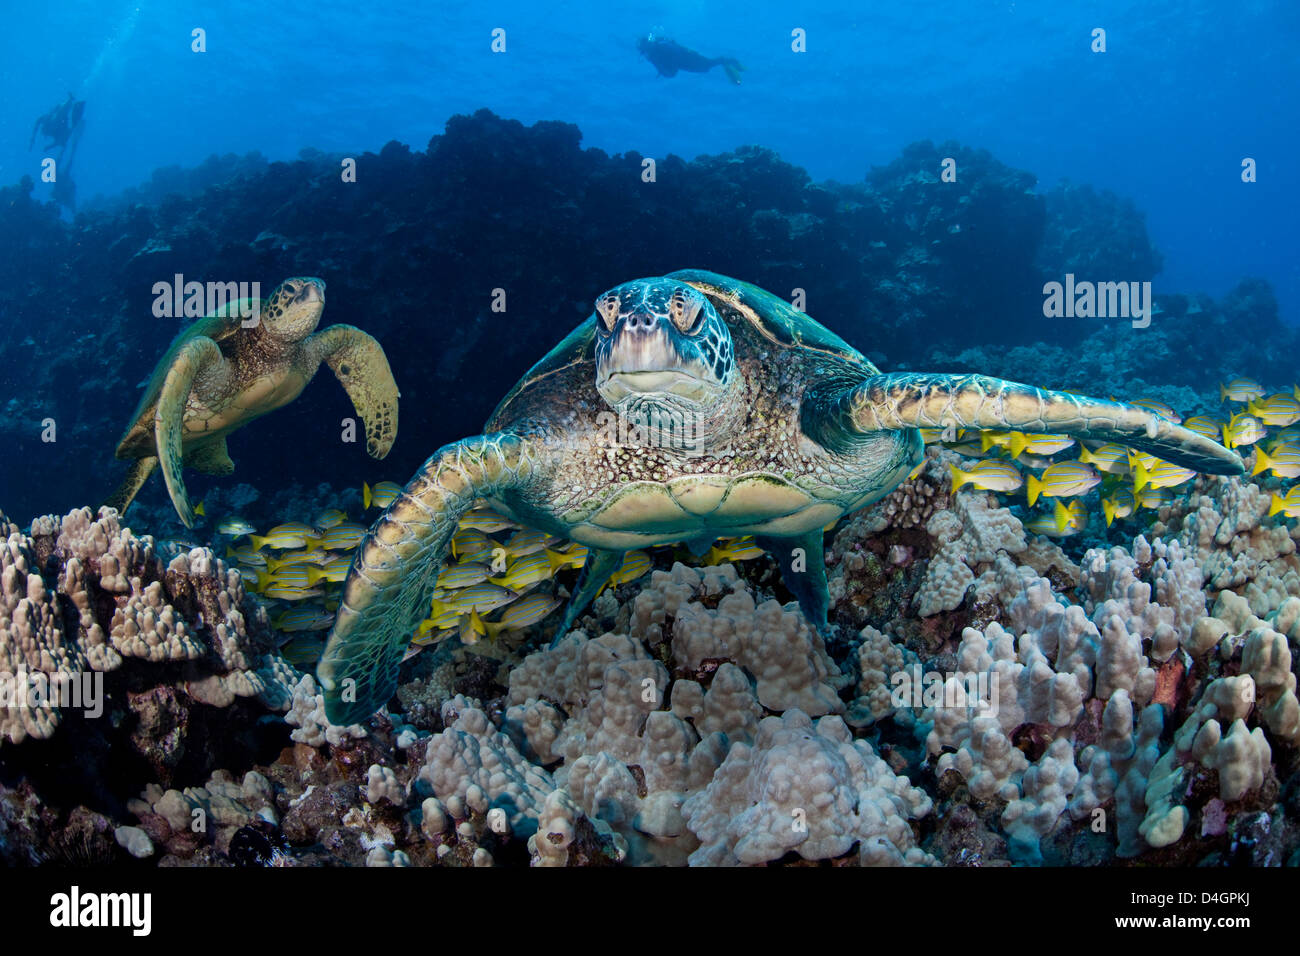 Three images were combined for this shot of green sea turtles, Chelonia mydas, an endangered species. Hawaii. - Stock Image